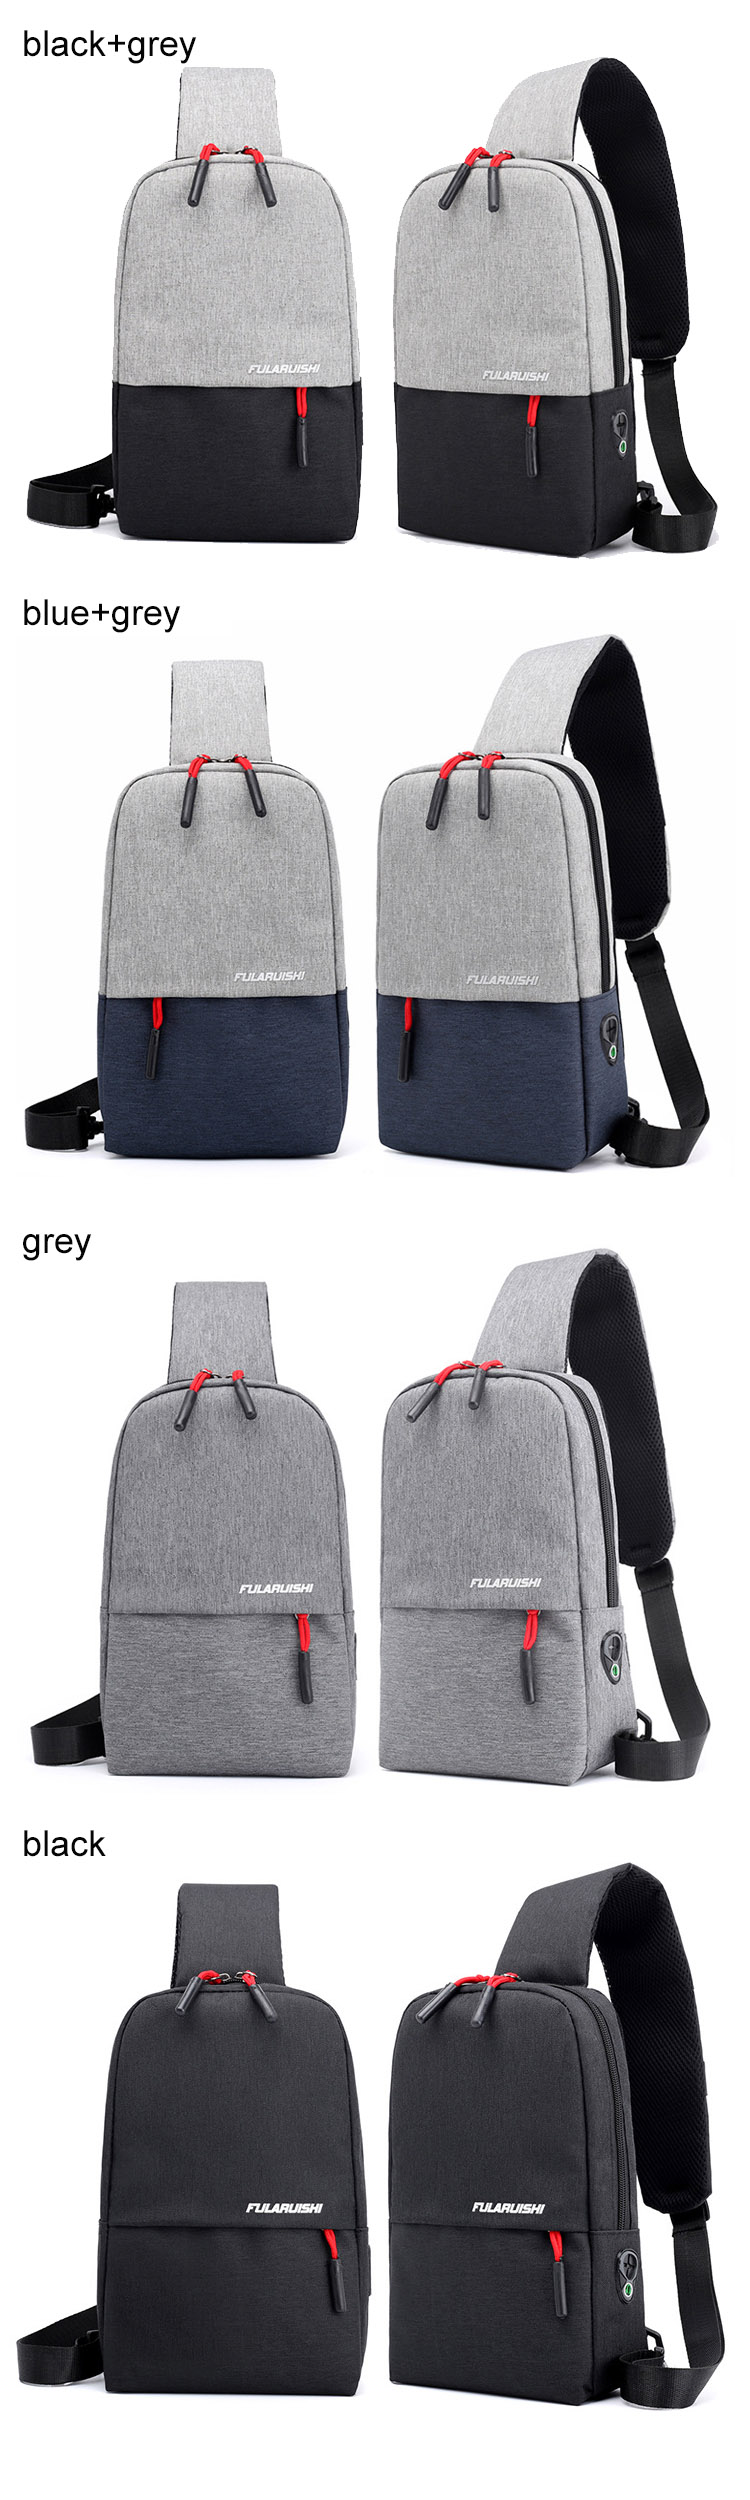 Godspeed shoulder sling bags urban used city large capacity ... 4d4f1f70eb4b3